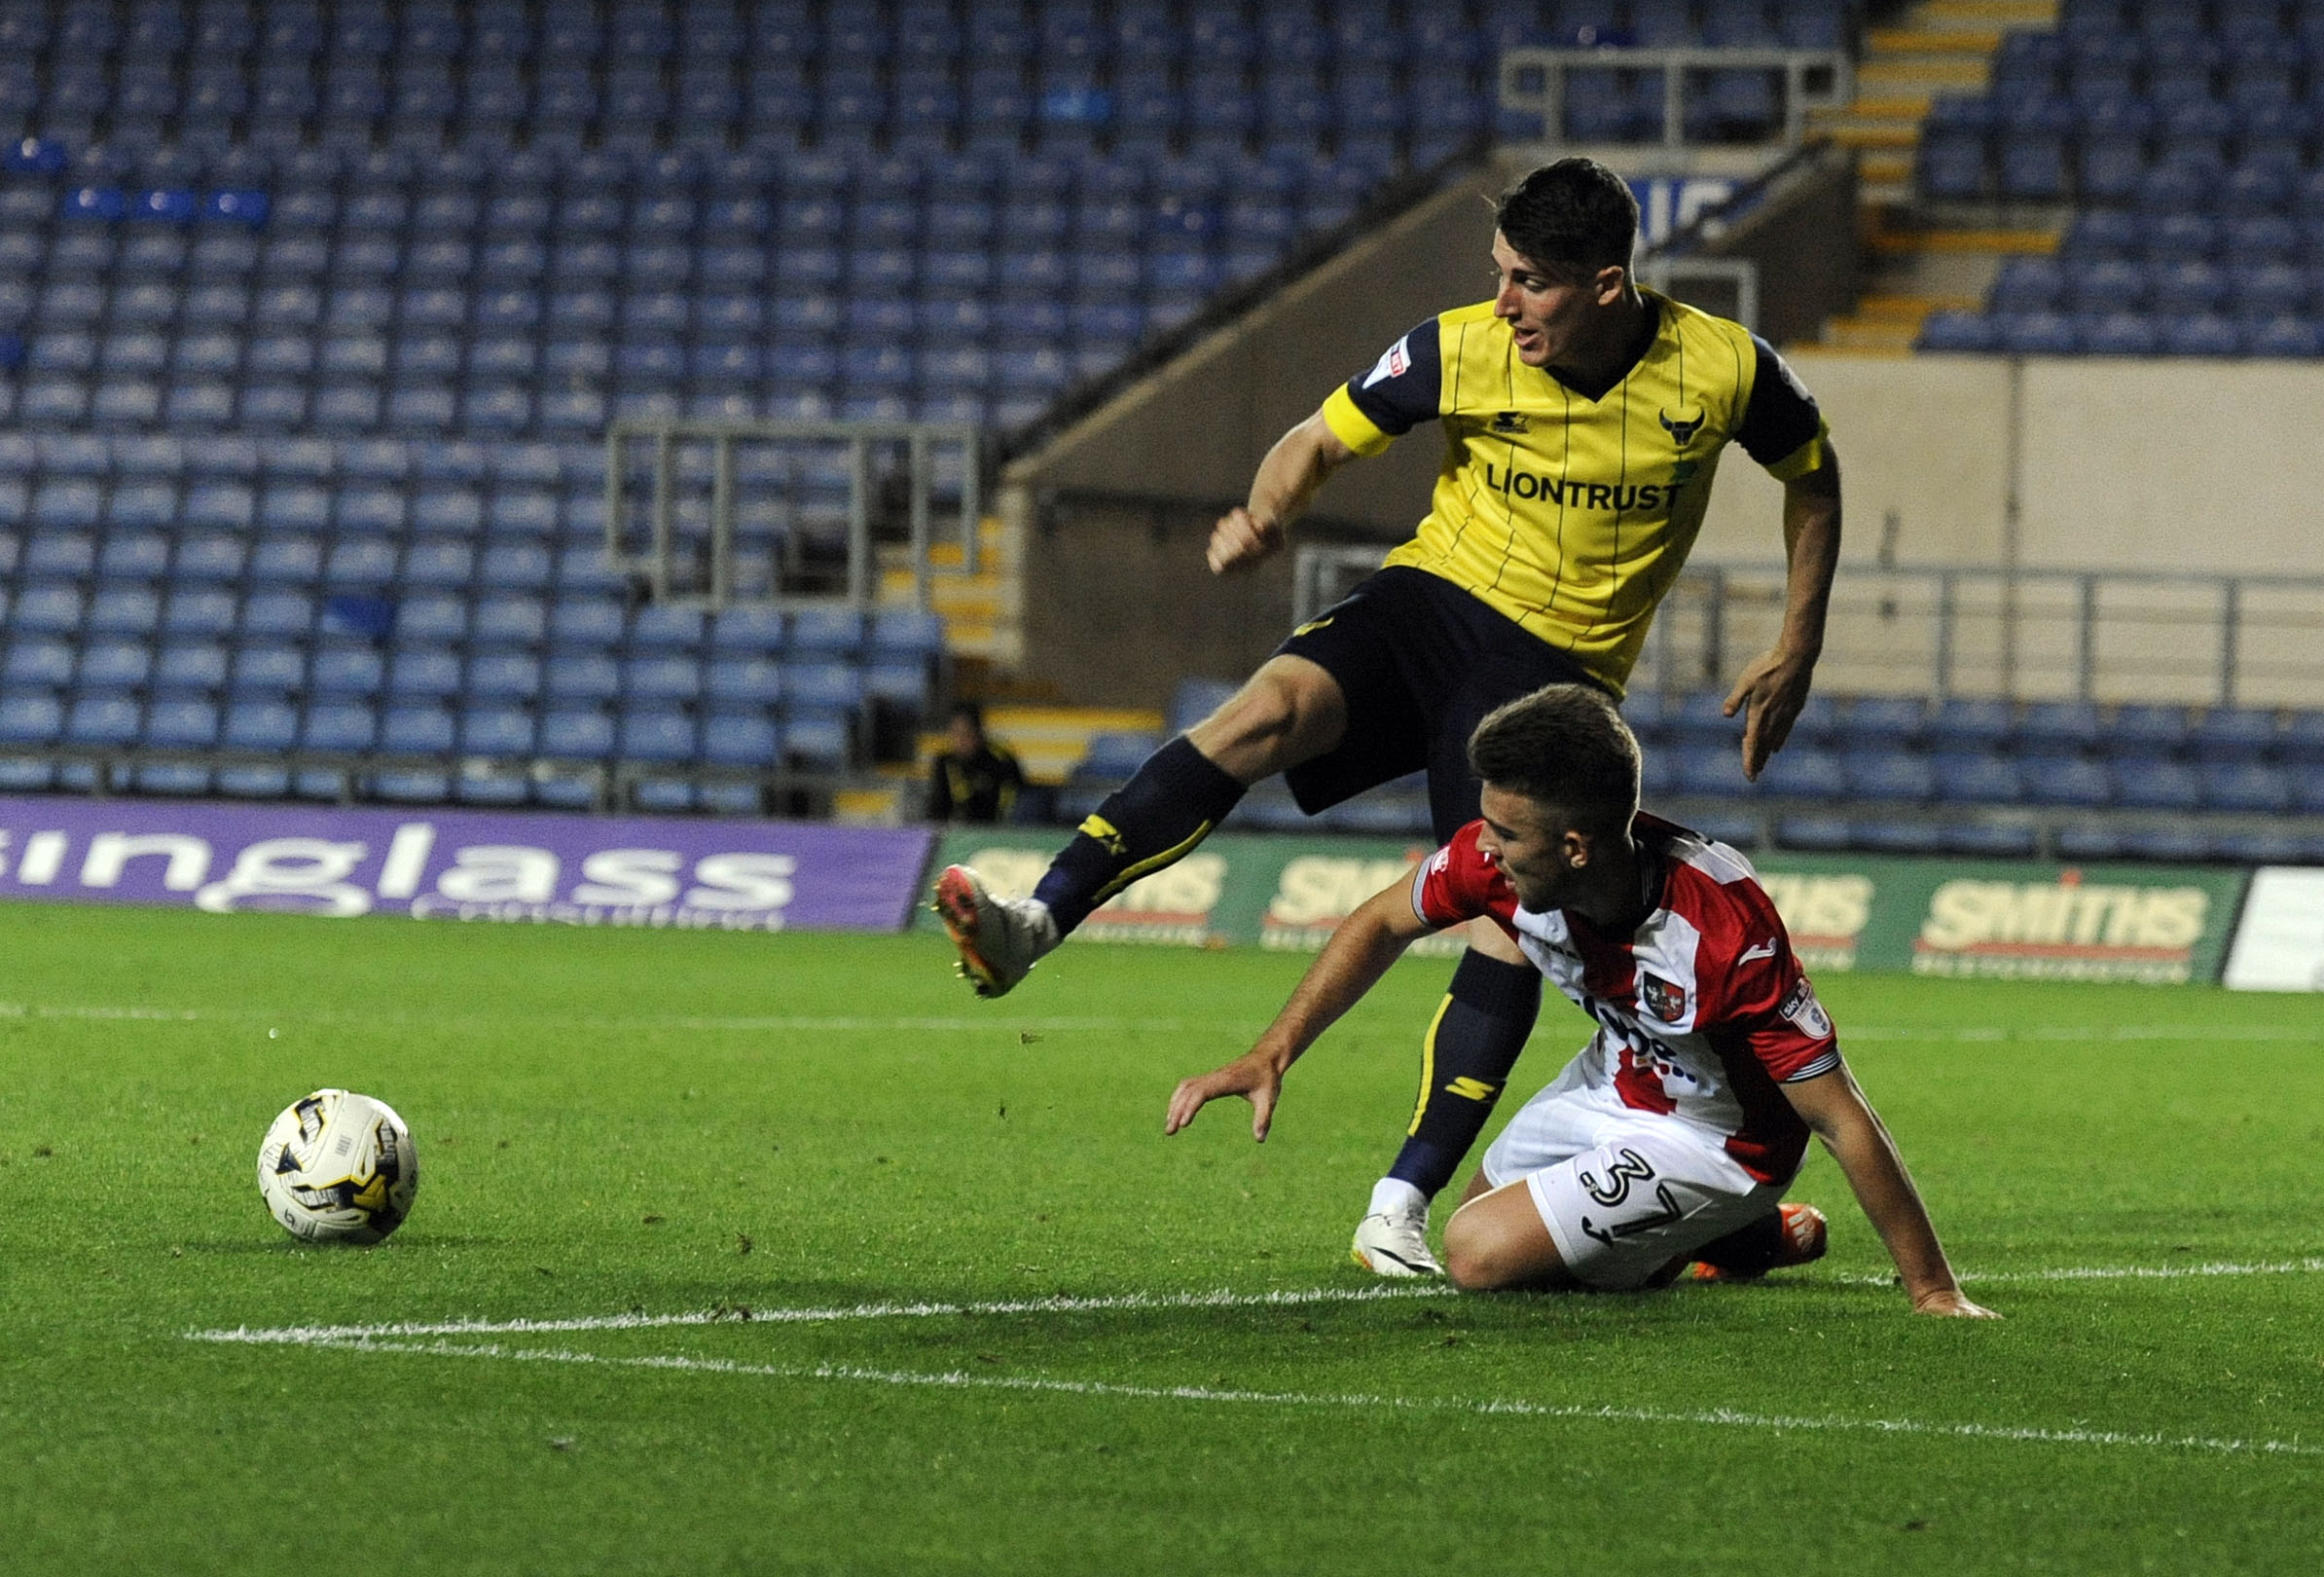 Oxford United's James Roberts, pictured in action against Exeter City in the Checkatrade Trophy in August, has joined Stalybridge Celtic on loan until the end of the season